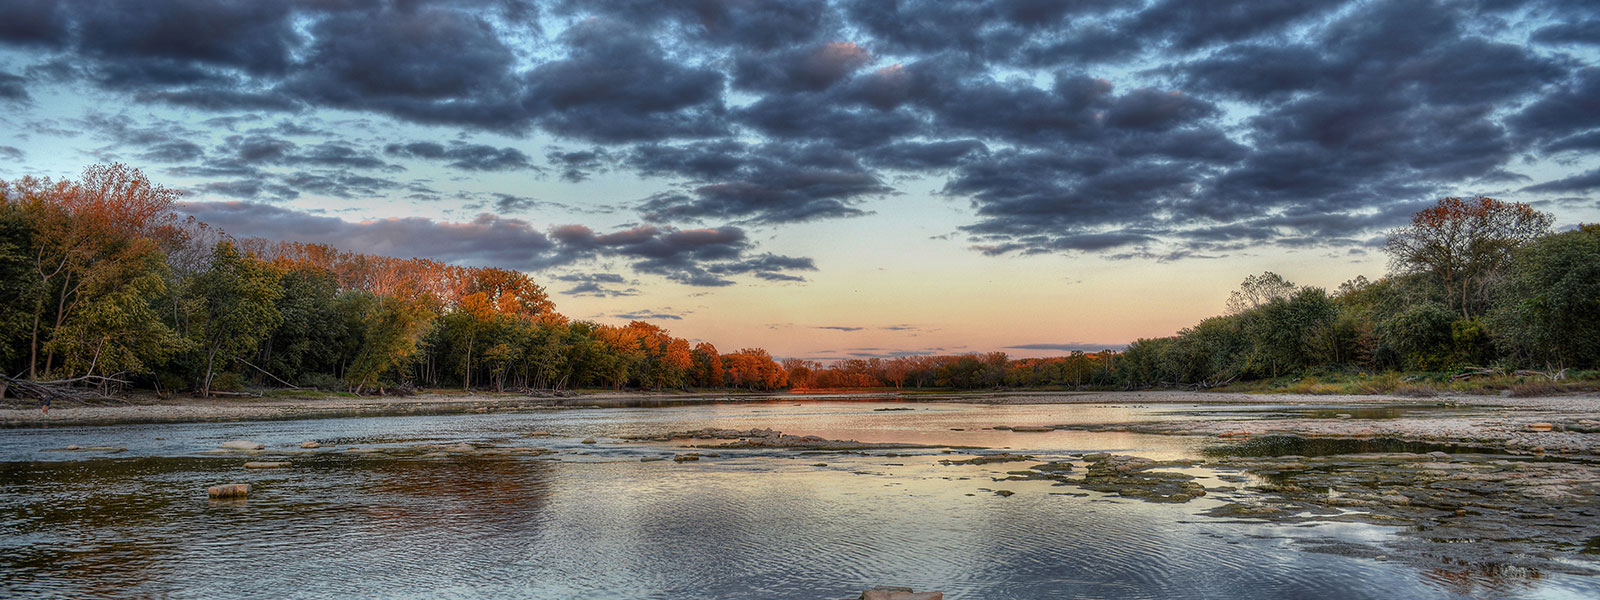 Buttonwood at dusk photo by Mike Guh